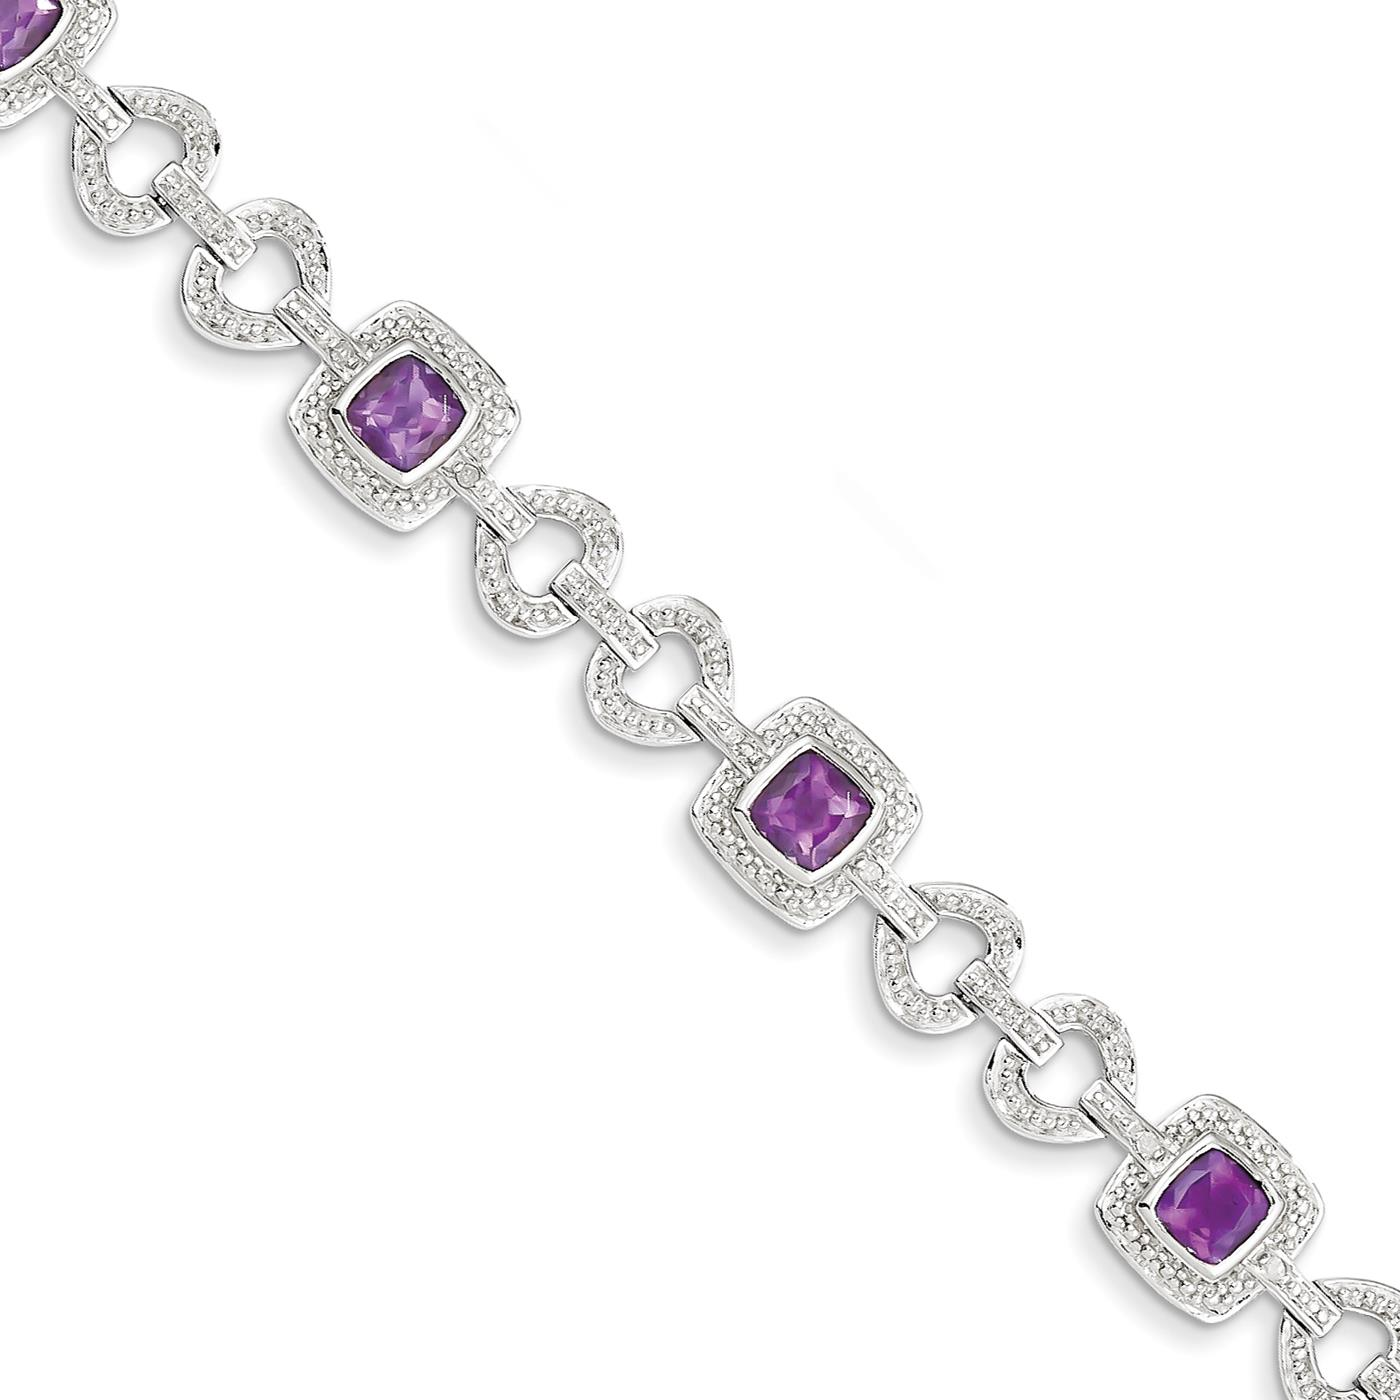 "Ladies 925 Sterling Silver 9mm Rhodium Plated Diamond & Amethyst Bracelet 7"" by Fusion Collections"